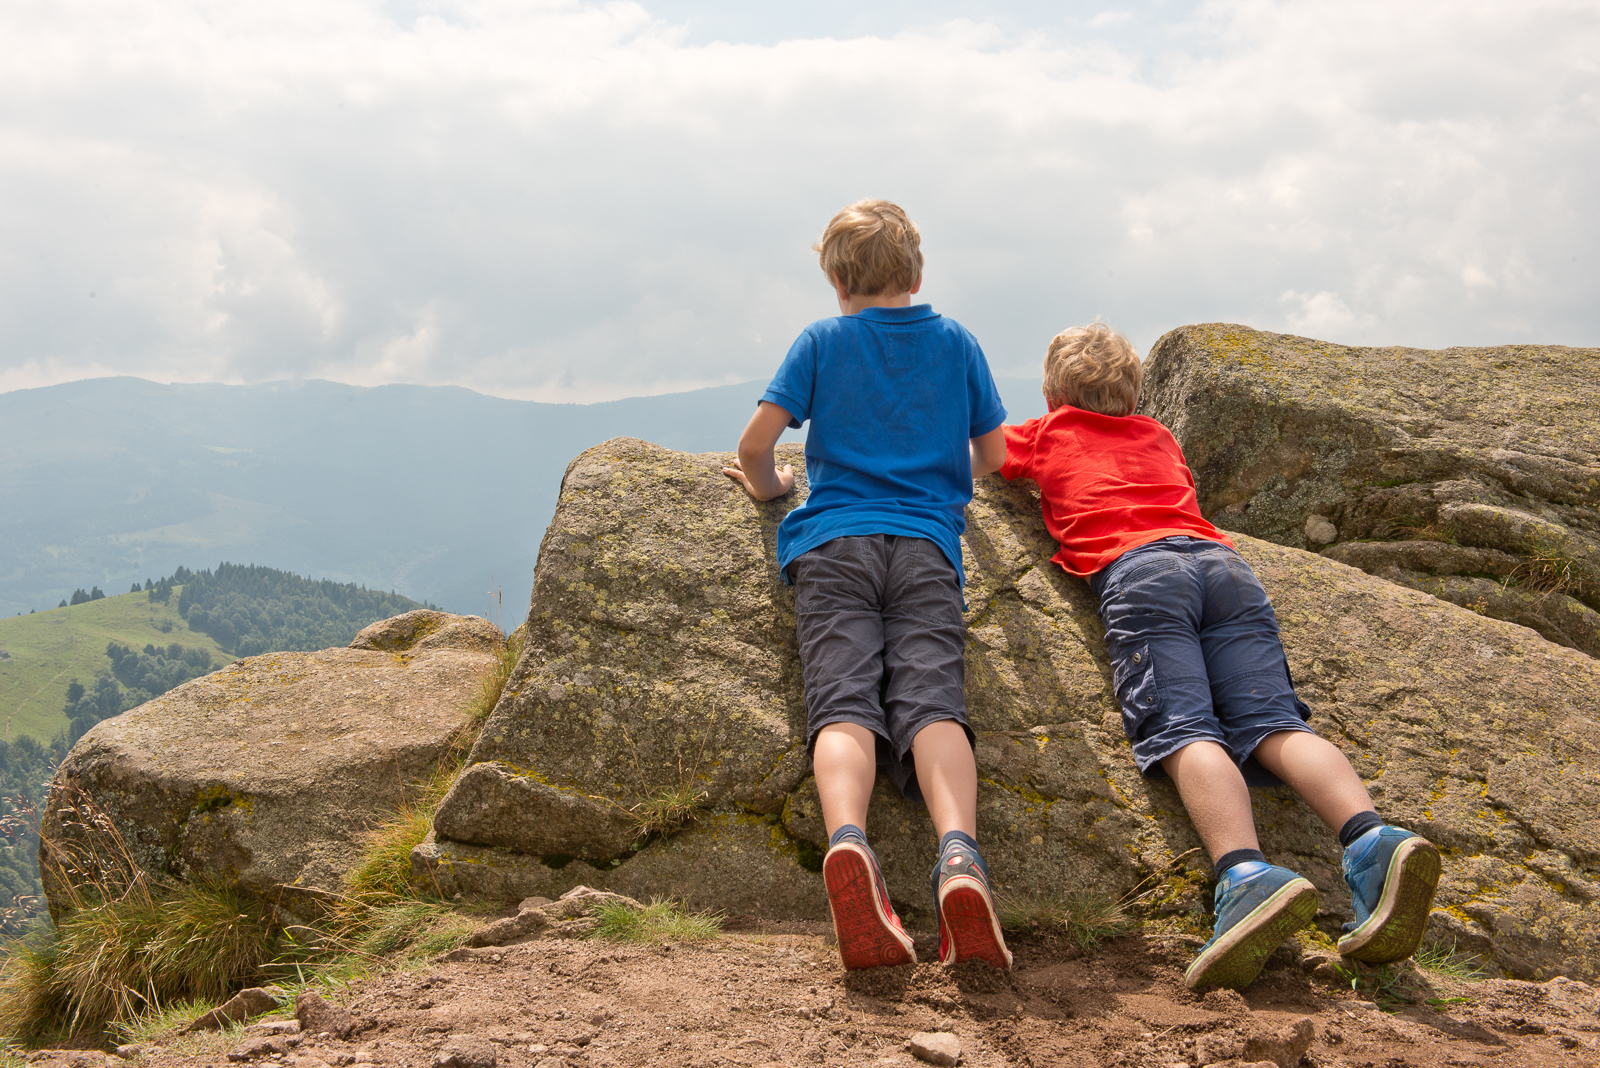 Two boys, brothers, peeking over the edge of a cliff, with their bellies on a few rocks, admiring the view